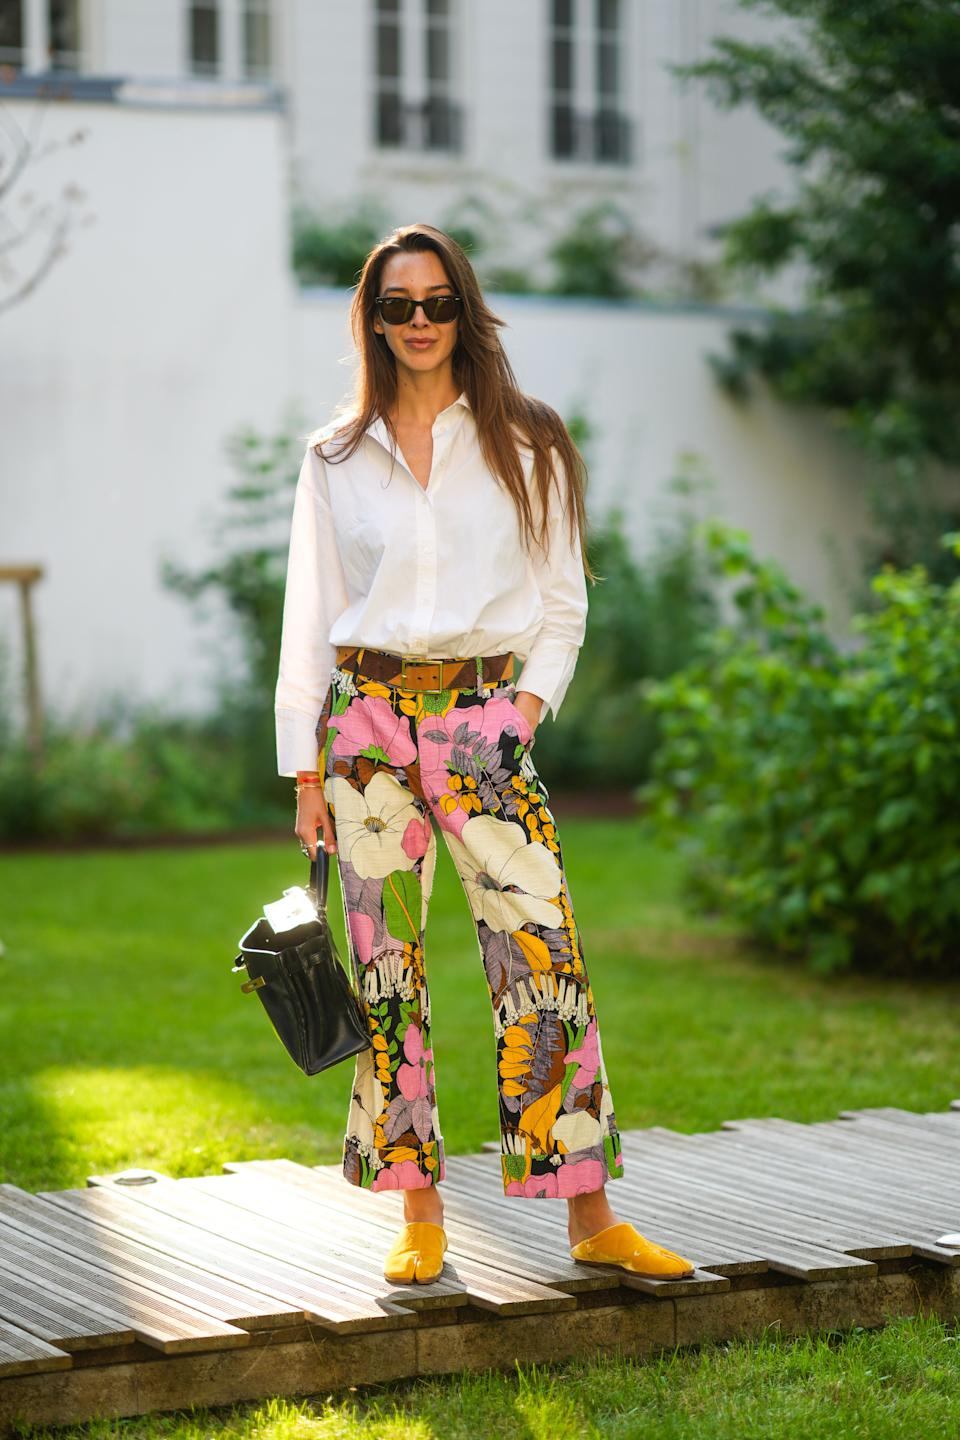 PARIS, FRANCE - JULY 01: Estelle Chemouny wears sunglasses, a white shirt, a brown striped belt, colored floral print flared pants, a black leather Hermes Birkin bag, yellow sandals / shoes, during the Twilly By Hermes : Launch Party In Paris, on July 01, 2021 in Paris, France. (Photo by Edward Berthelot/Getty Images)